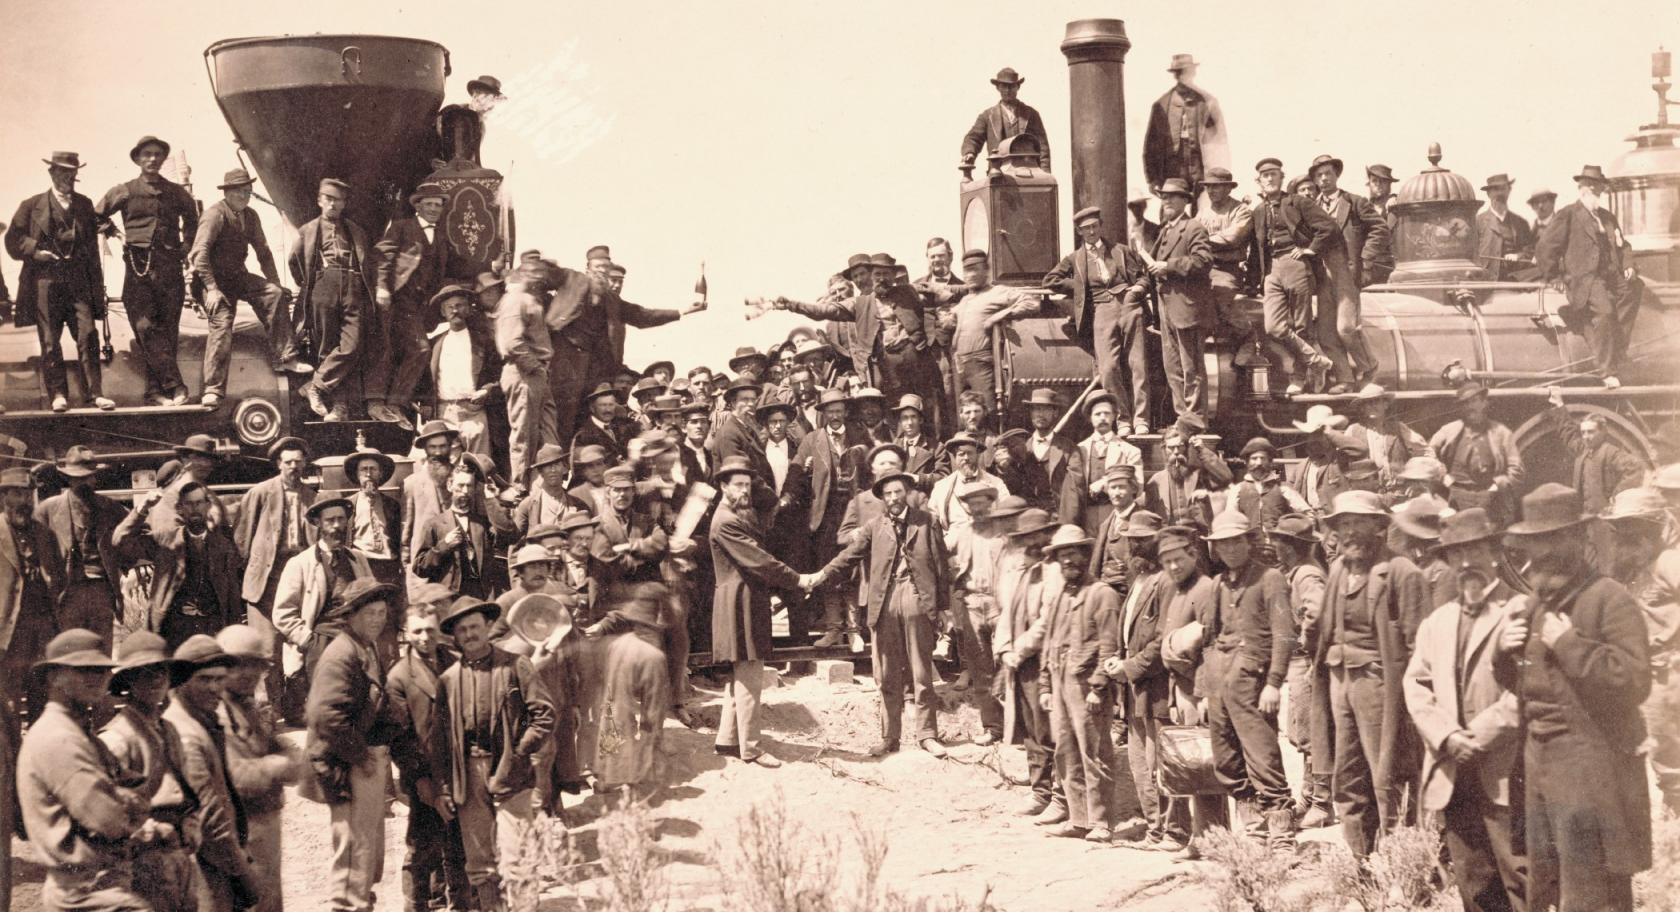 Andrew J. Russell (American, 1830­1902), East and West Shaking Hands at Laying Last Rail, 1869, albumen print, courtesy Union Pacific Railroad Museum. The ceremony spotlighted Union Pacific locomotive No. 119 meeting Central Pacific locomotive Jupiter. From left, shaking hands, are Samuel S. Montague, chief engineer of the Central Pacific Railroad, and General Grenville M. Dodge, chief engineer of the Union Pacific Railroad.